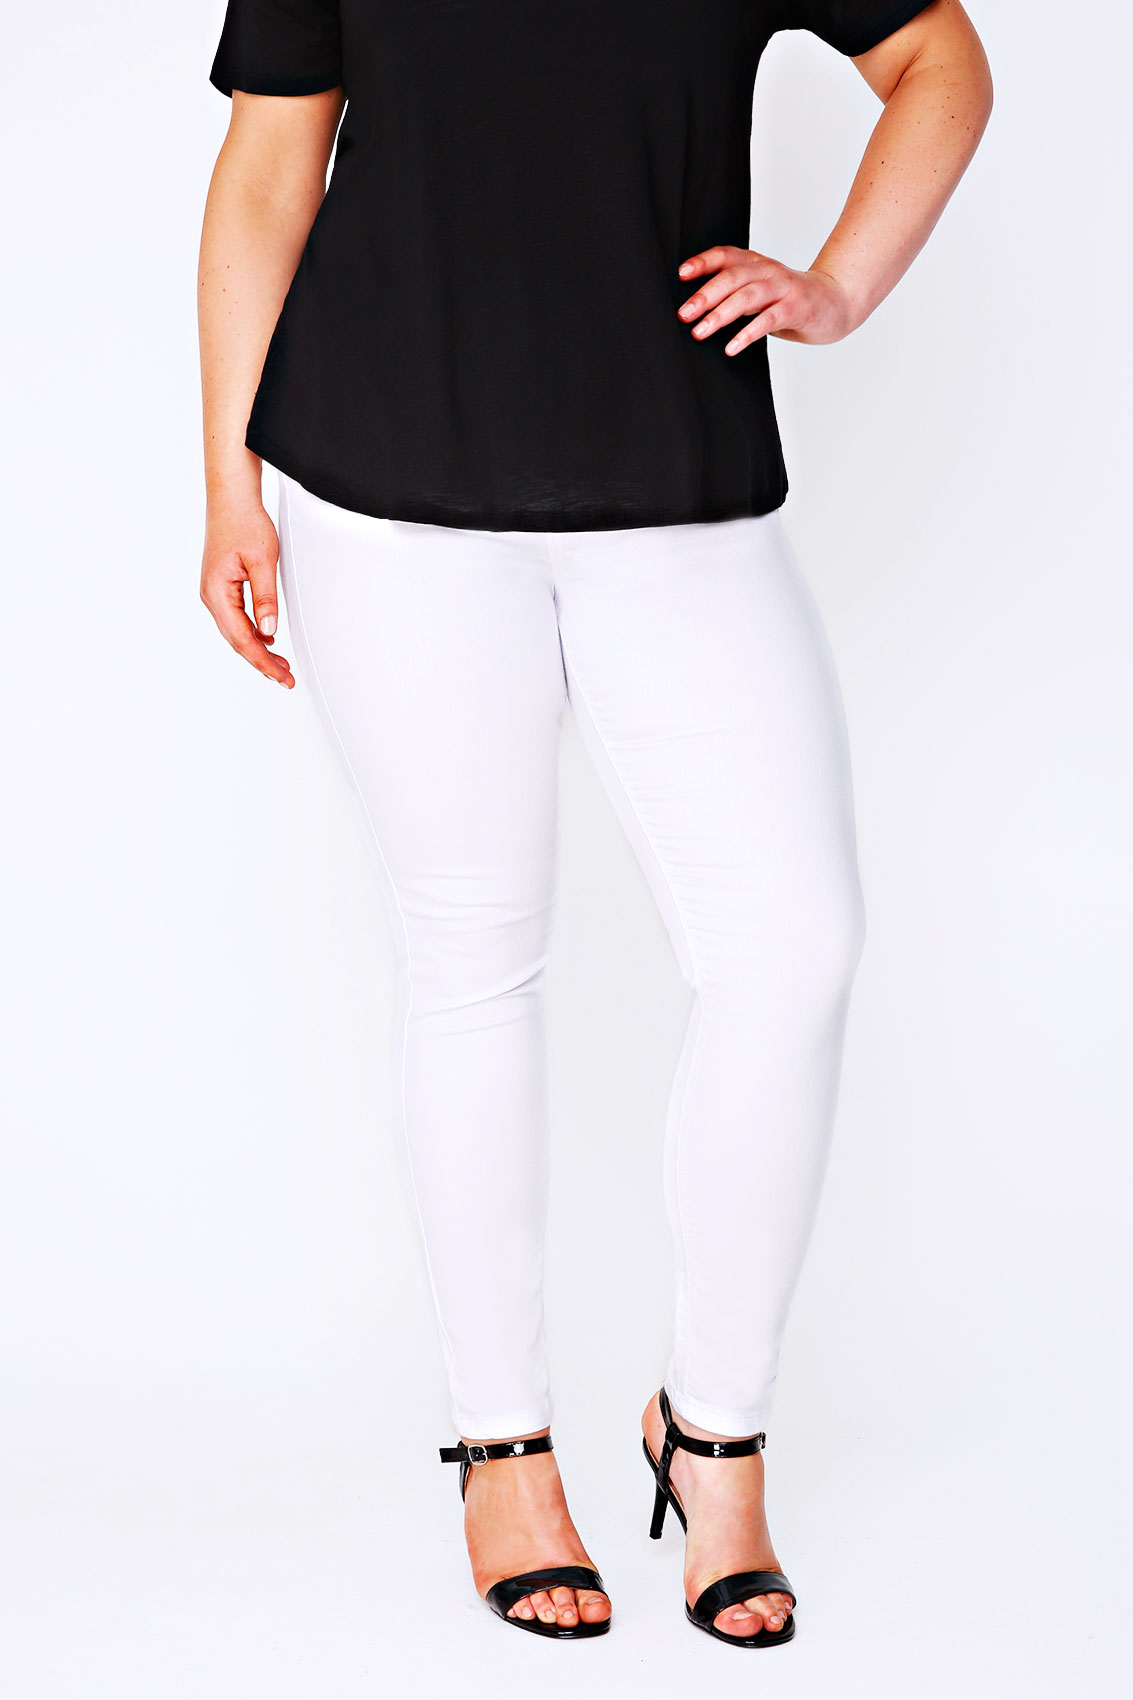 LAstylebook | Bagel clothing - is the leading supplier of wholesale denim jeans in Los Angeles California. We are a clothing wholesalers in Los Angeles and we offer a variety of selection of wholesale Woman Jeans, clothing & Wholesale Apparel. Our lines include wholesale denim jeans, wholesale plus size clothing and plus size jeans specialisedsteels.tks la mejor seleccion de jeans al por mayor.